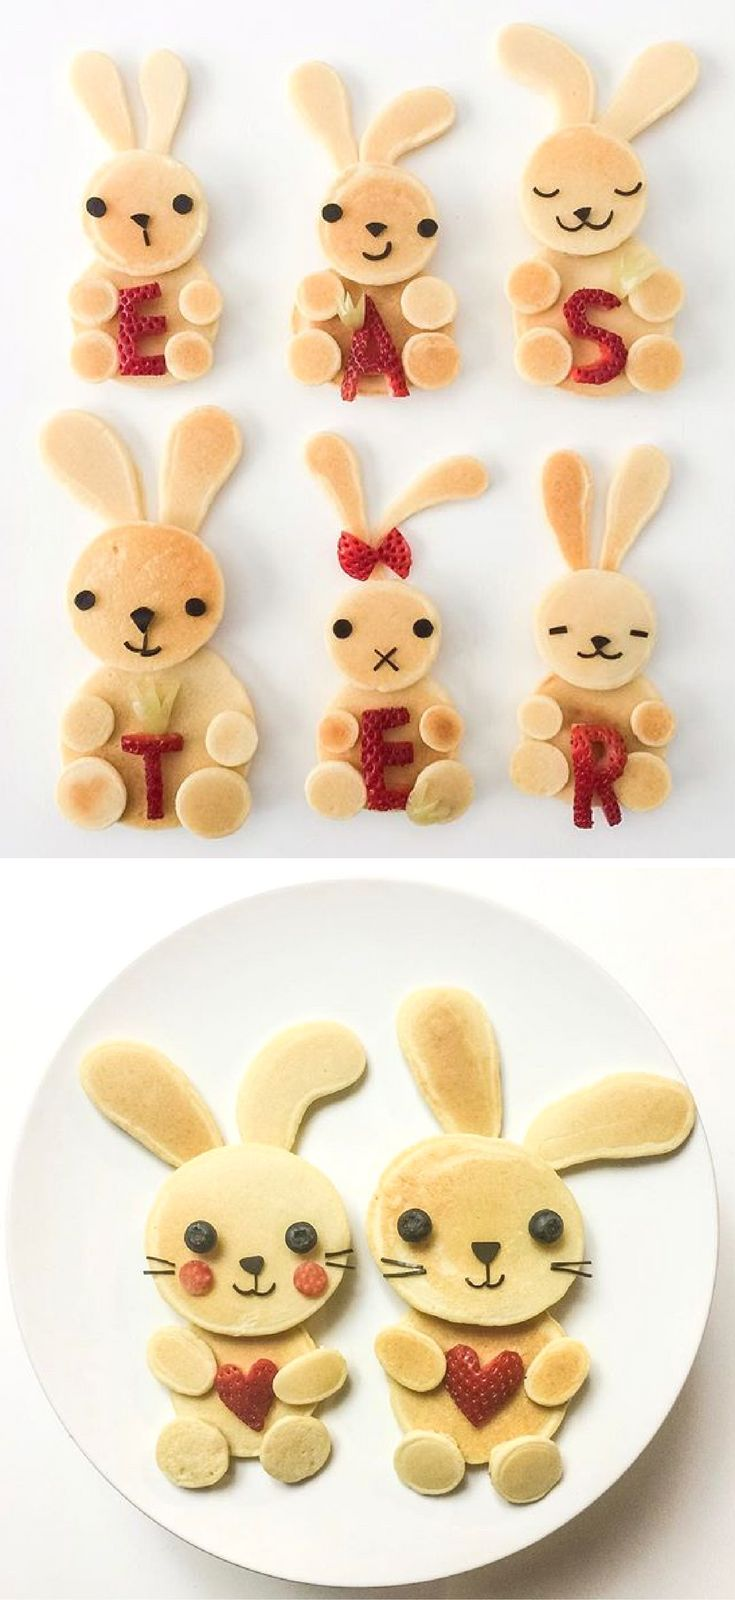 Fun Easter Food Ideas for Kids | Creative Easter themed recipes to make for your children for Breakfast (bunny pancakes!), Brunch, Lunch or a Healthy Snack. Plus, sweet treats and desserts that are perfect for your child's school class party or just for fun - super cute yet easy including cakes, bark, brownies, peeps, bunnies, lambs, mini eggs, rice krispies and more! Head to whatmomslove.com for all the recipes.